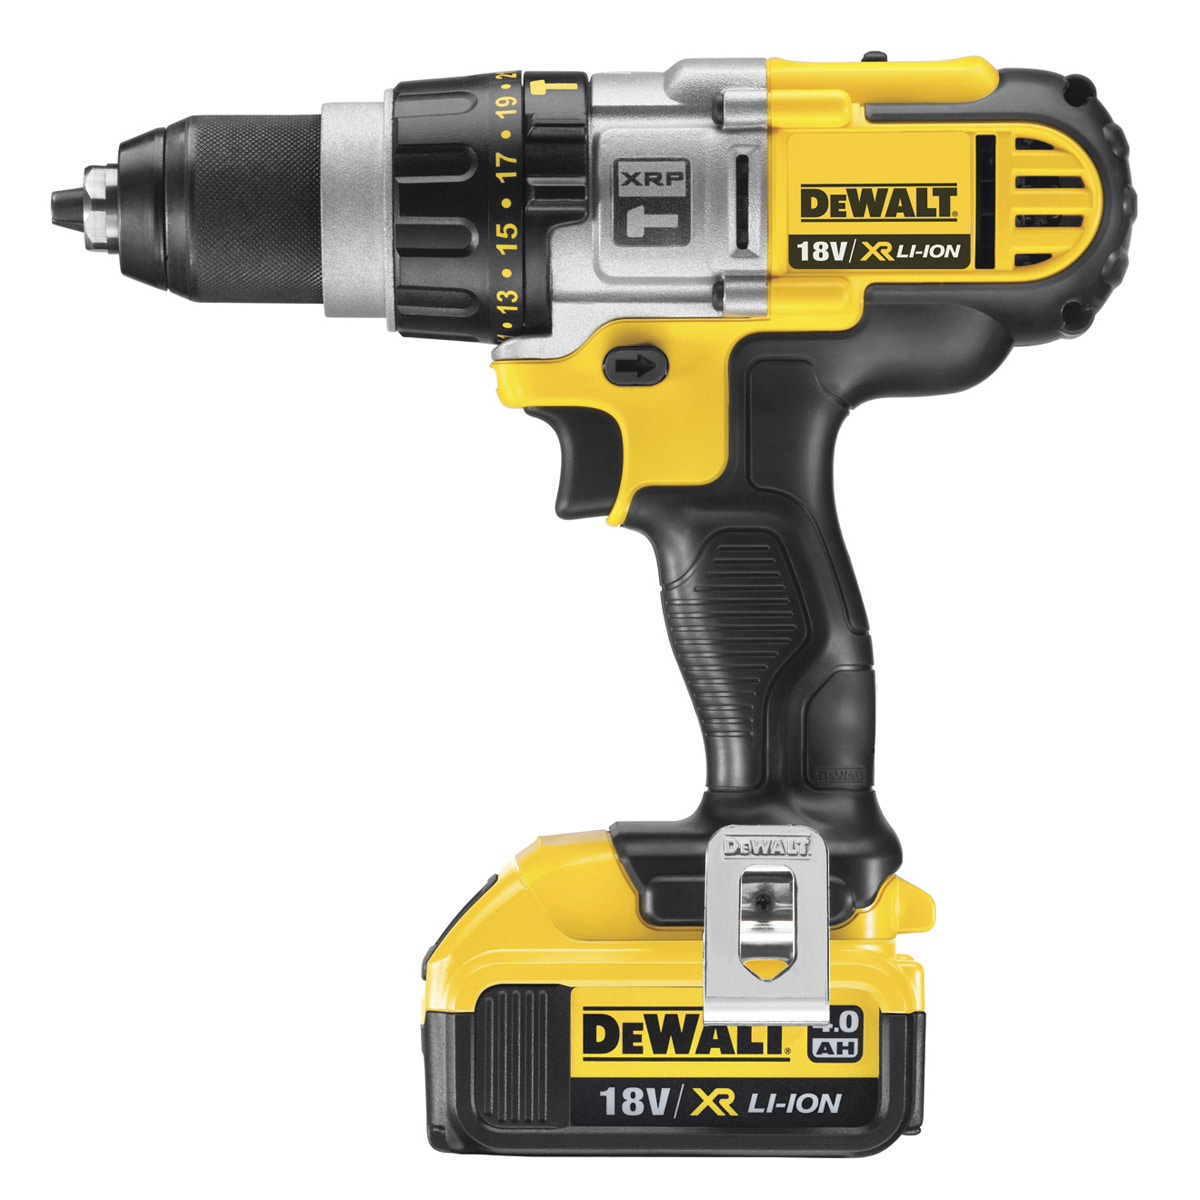 DEWALT DCD985M2 18V 3 SPEED XRP COMBI DRILL WITH 2X 4.0AH LITHIUM-ION XR BATTERIES